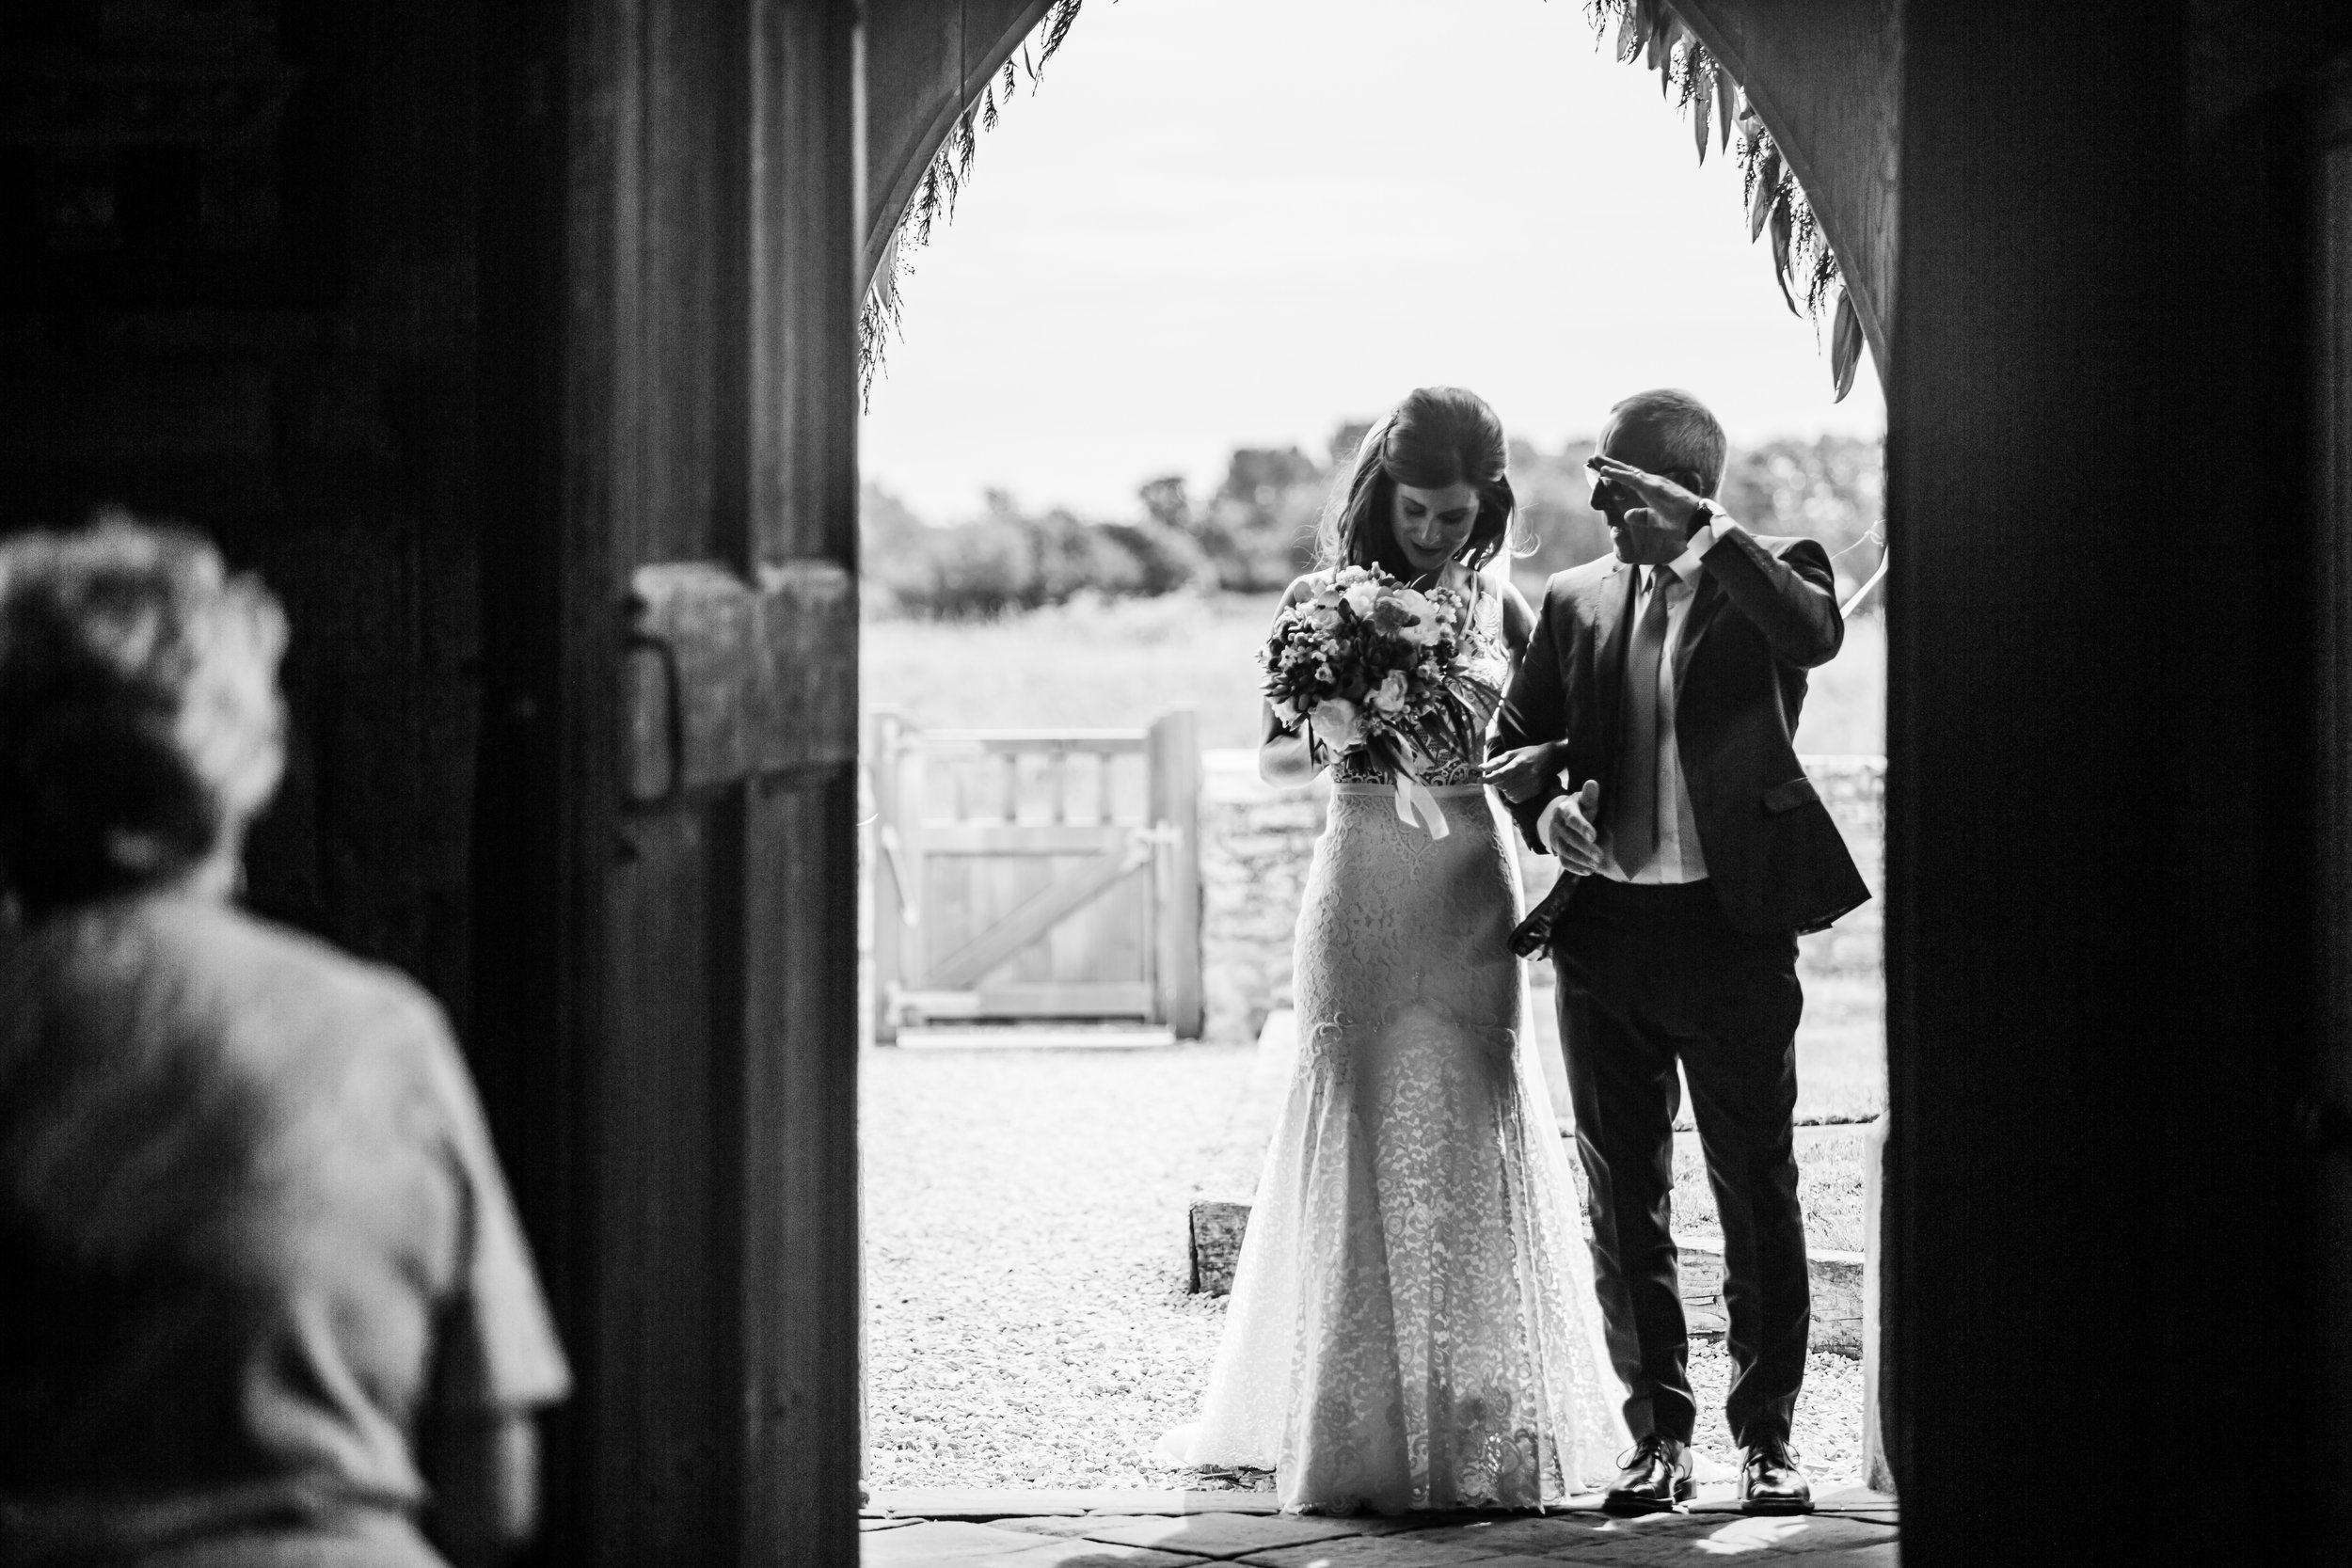 A bride waits with her dad in the entrance of a church.